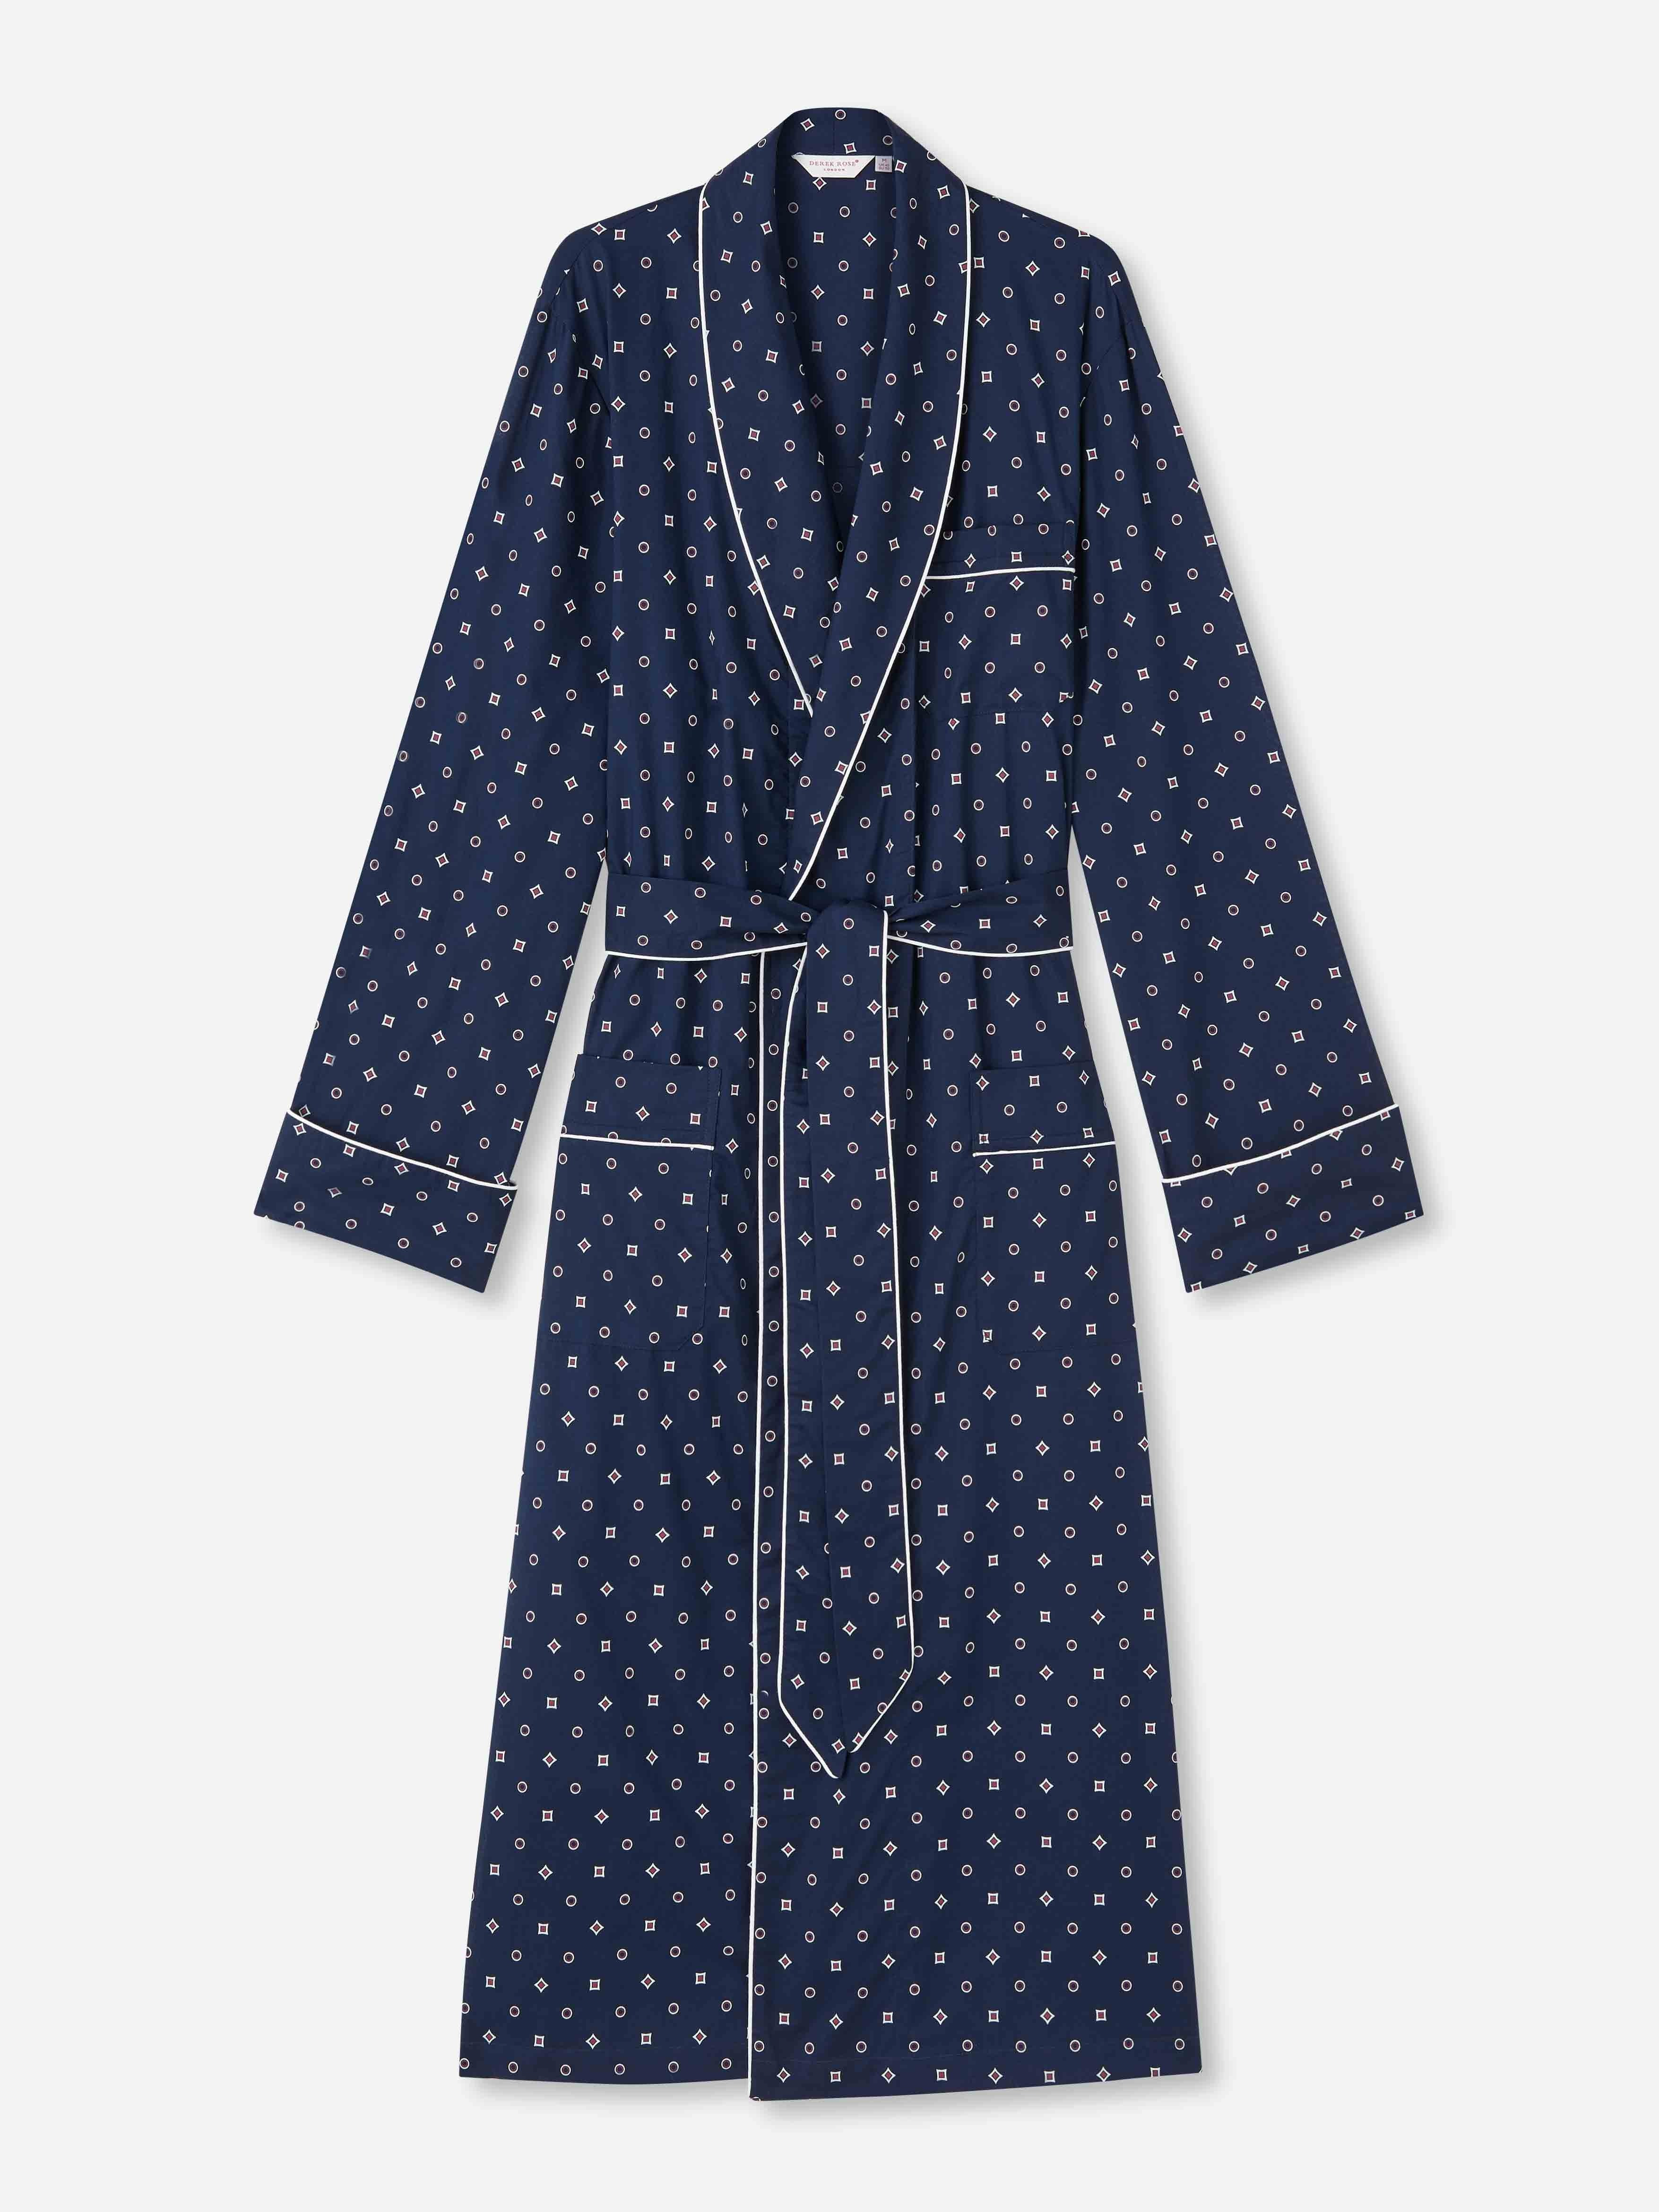 Men's Piped Dressing Gown Nelson 80 Cotton Batiste Navy